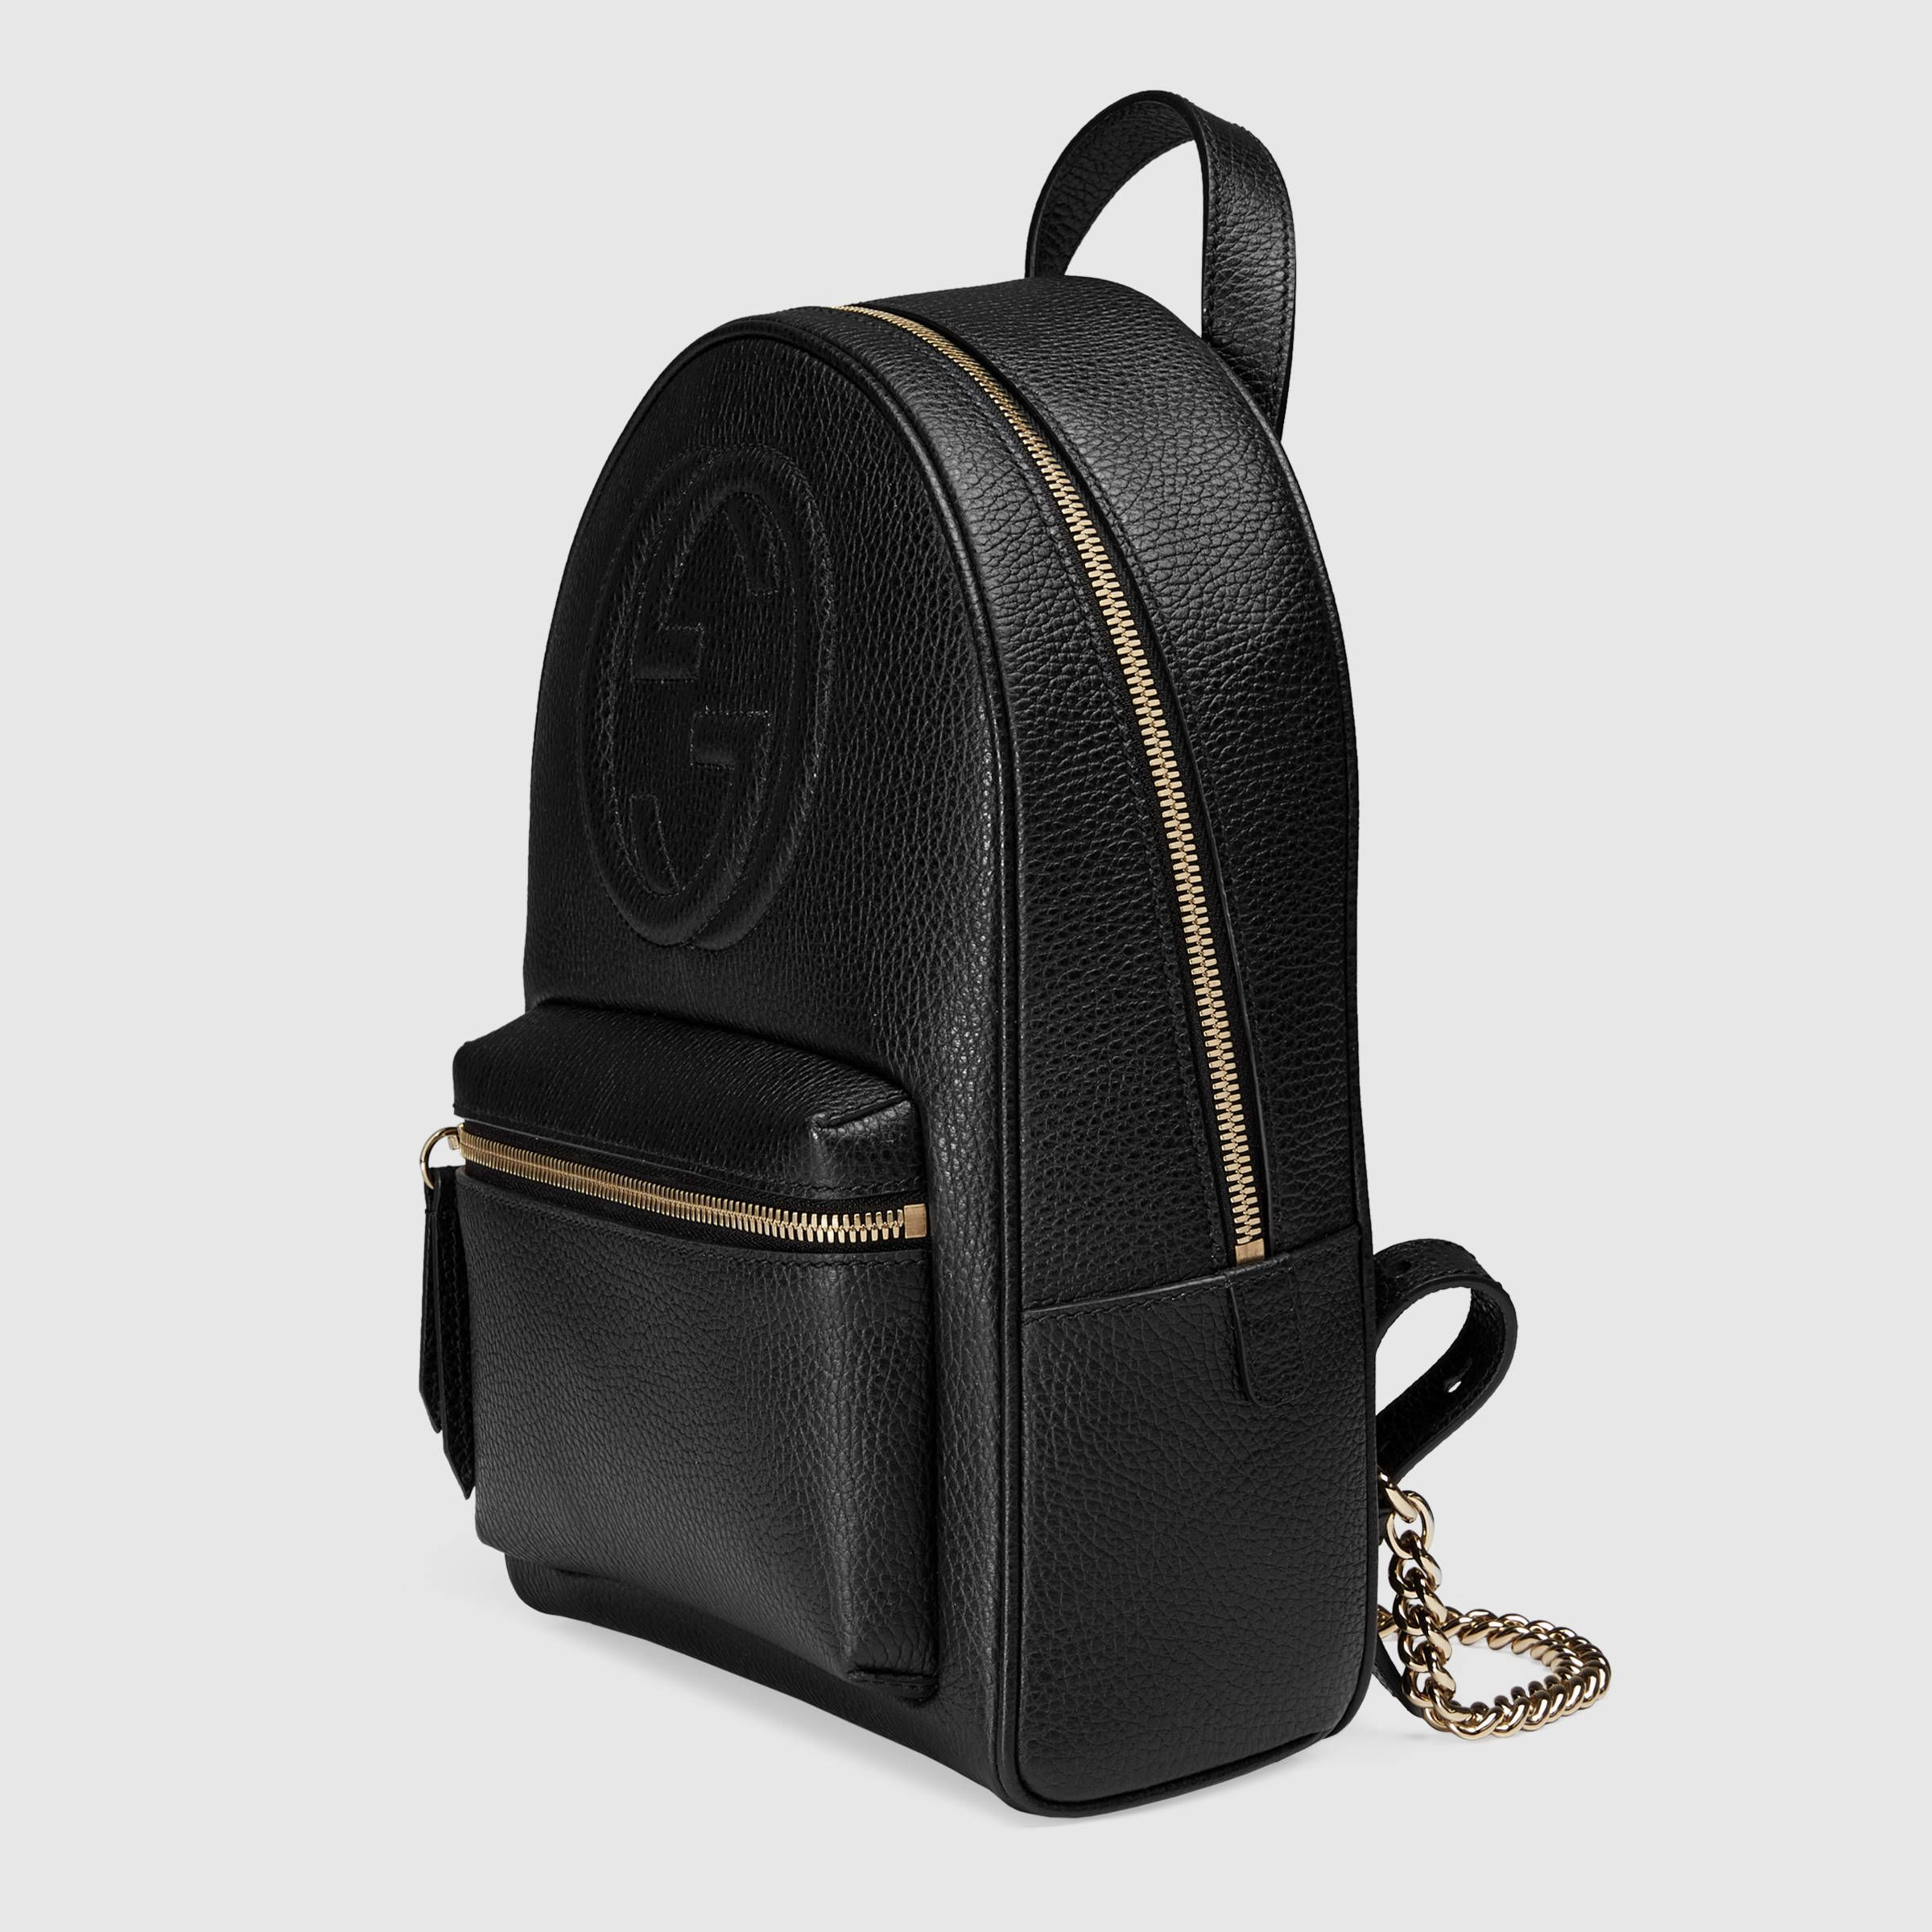 Soho leather chain backpack , Gucci Women\u0027s Backpacks